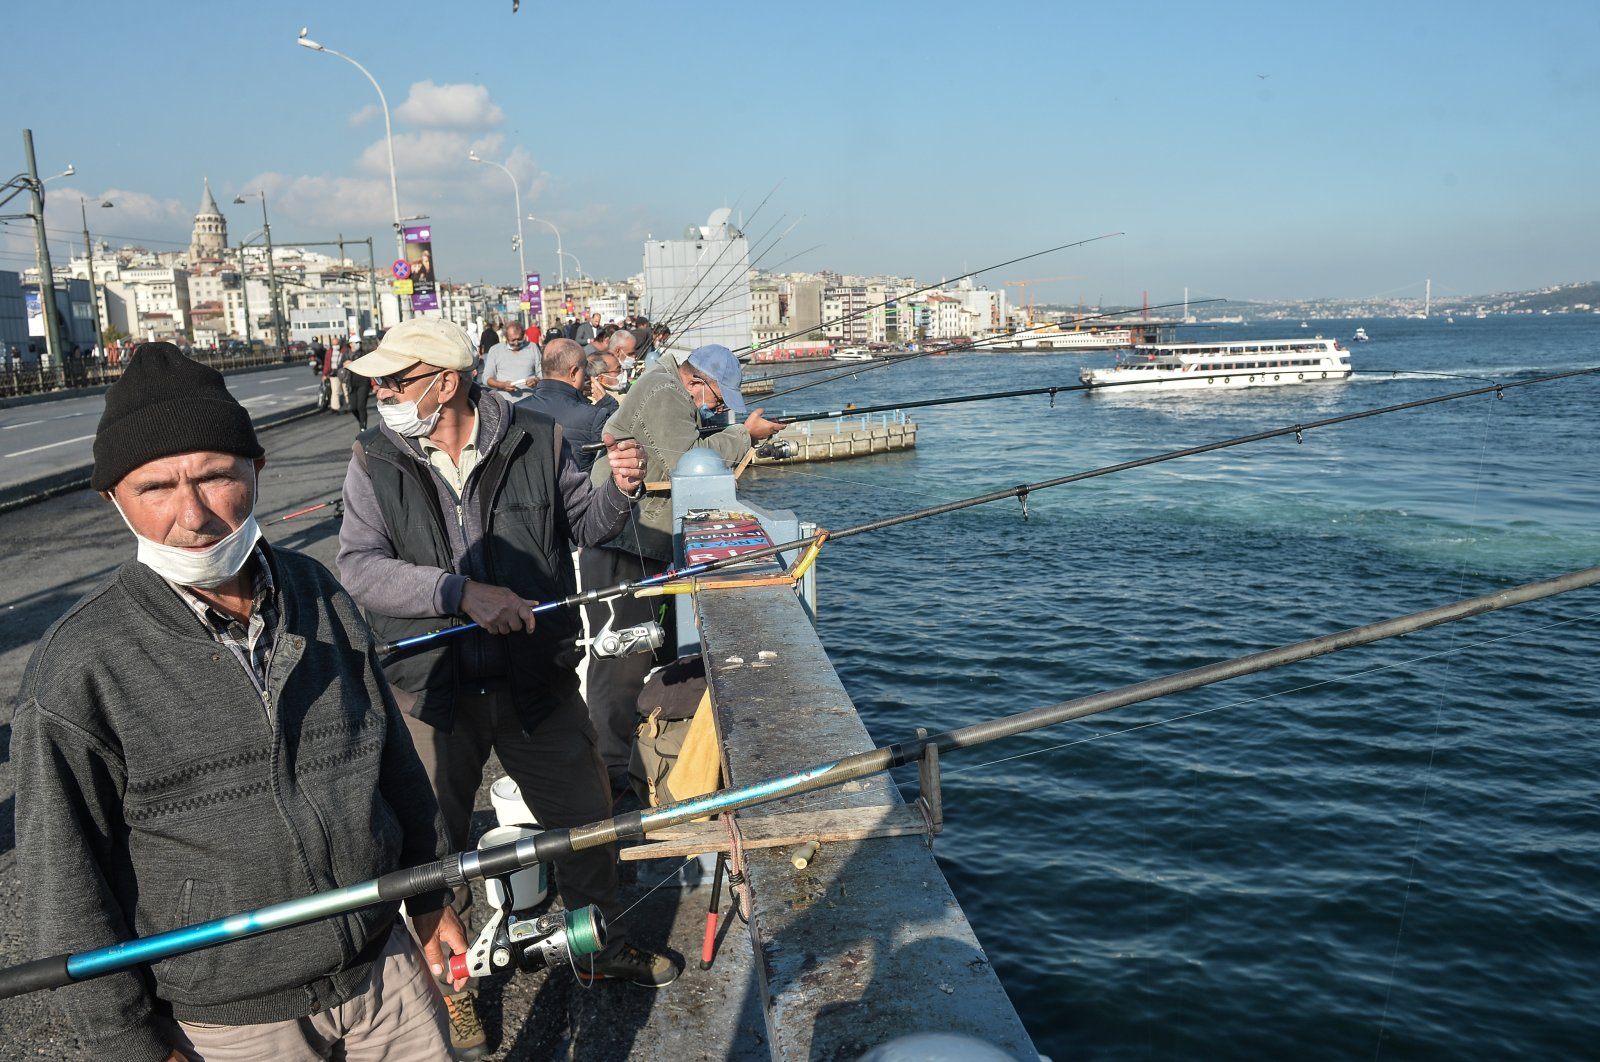 Fishermen cast their lines off Galata Bridge, some wearing masks to protect against COVID-19, in Istanbul, Turkey, Nov. 2, 2020. (DHA Photo)